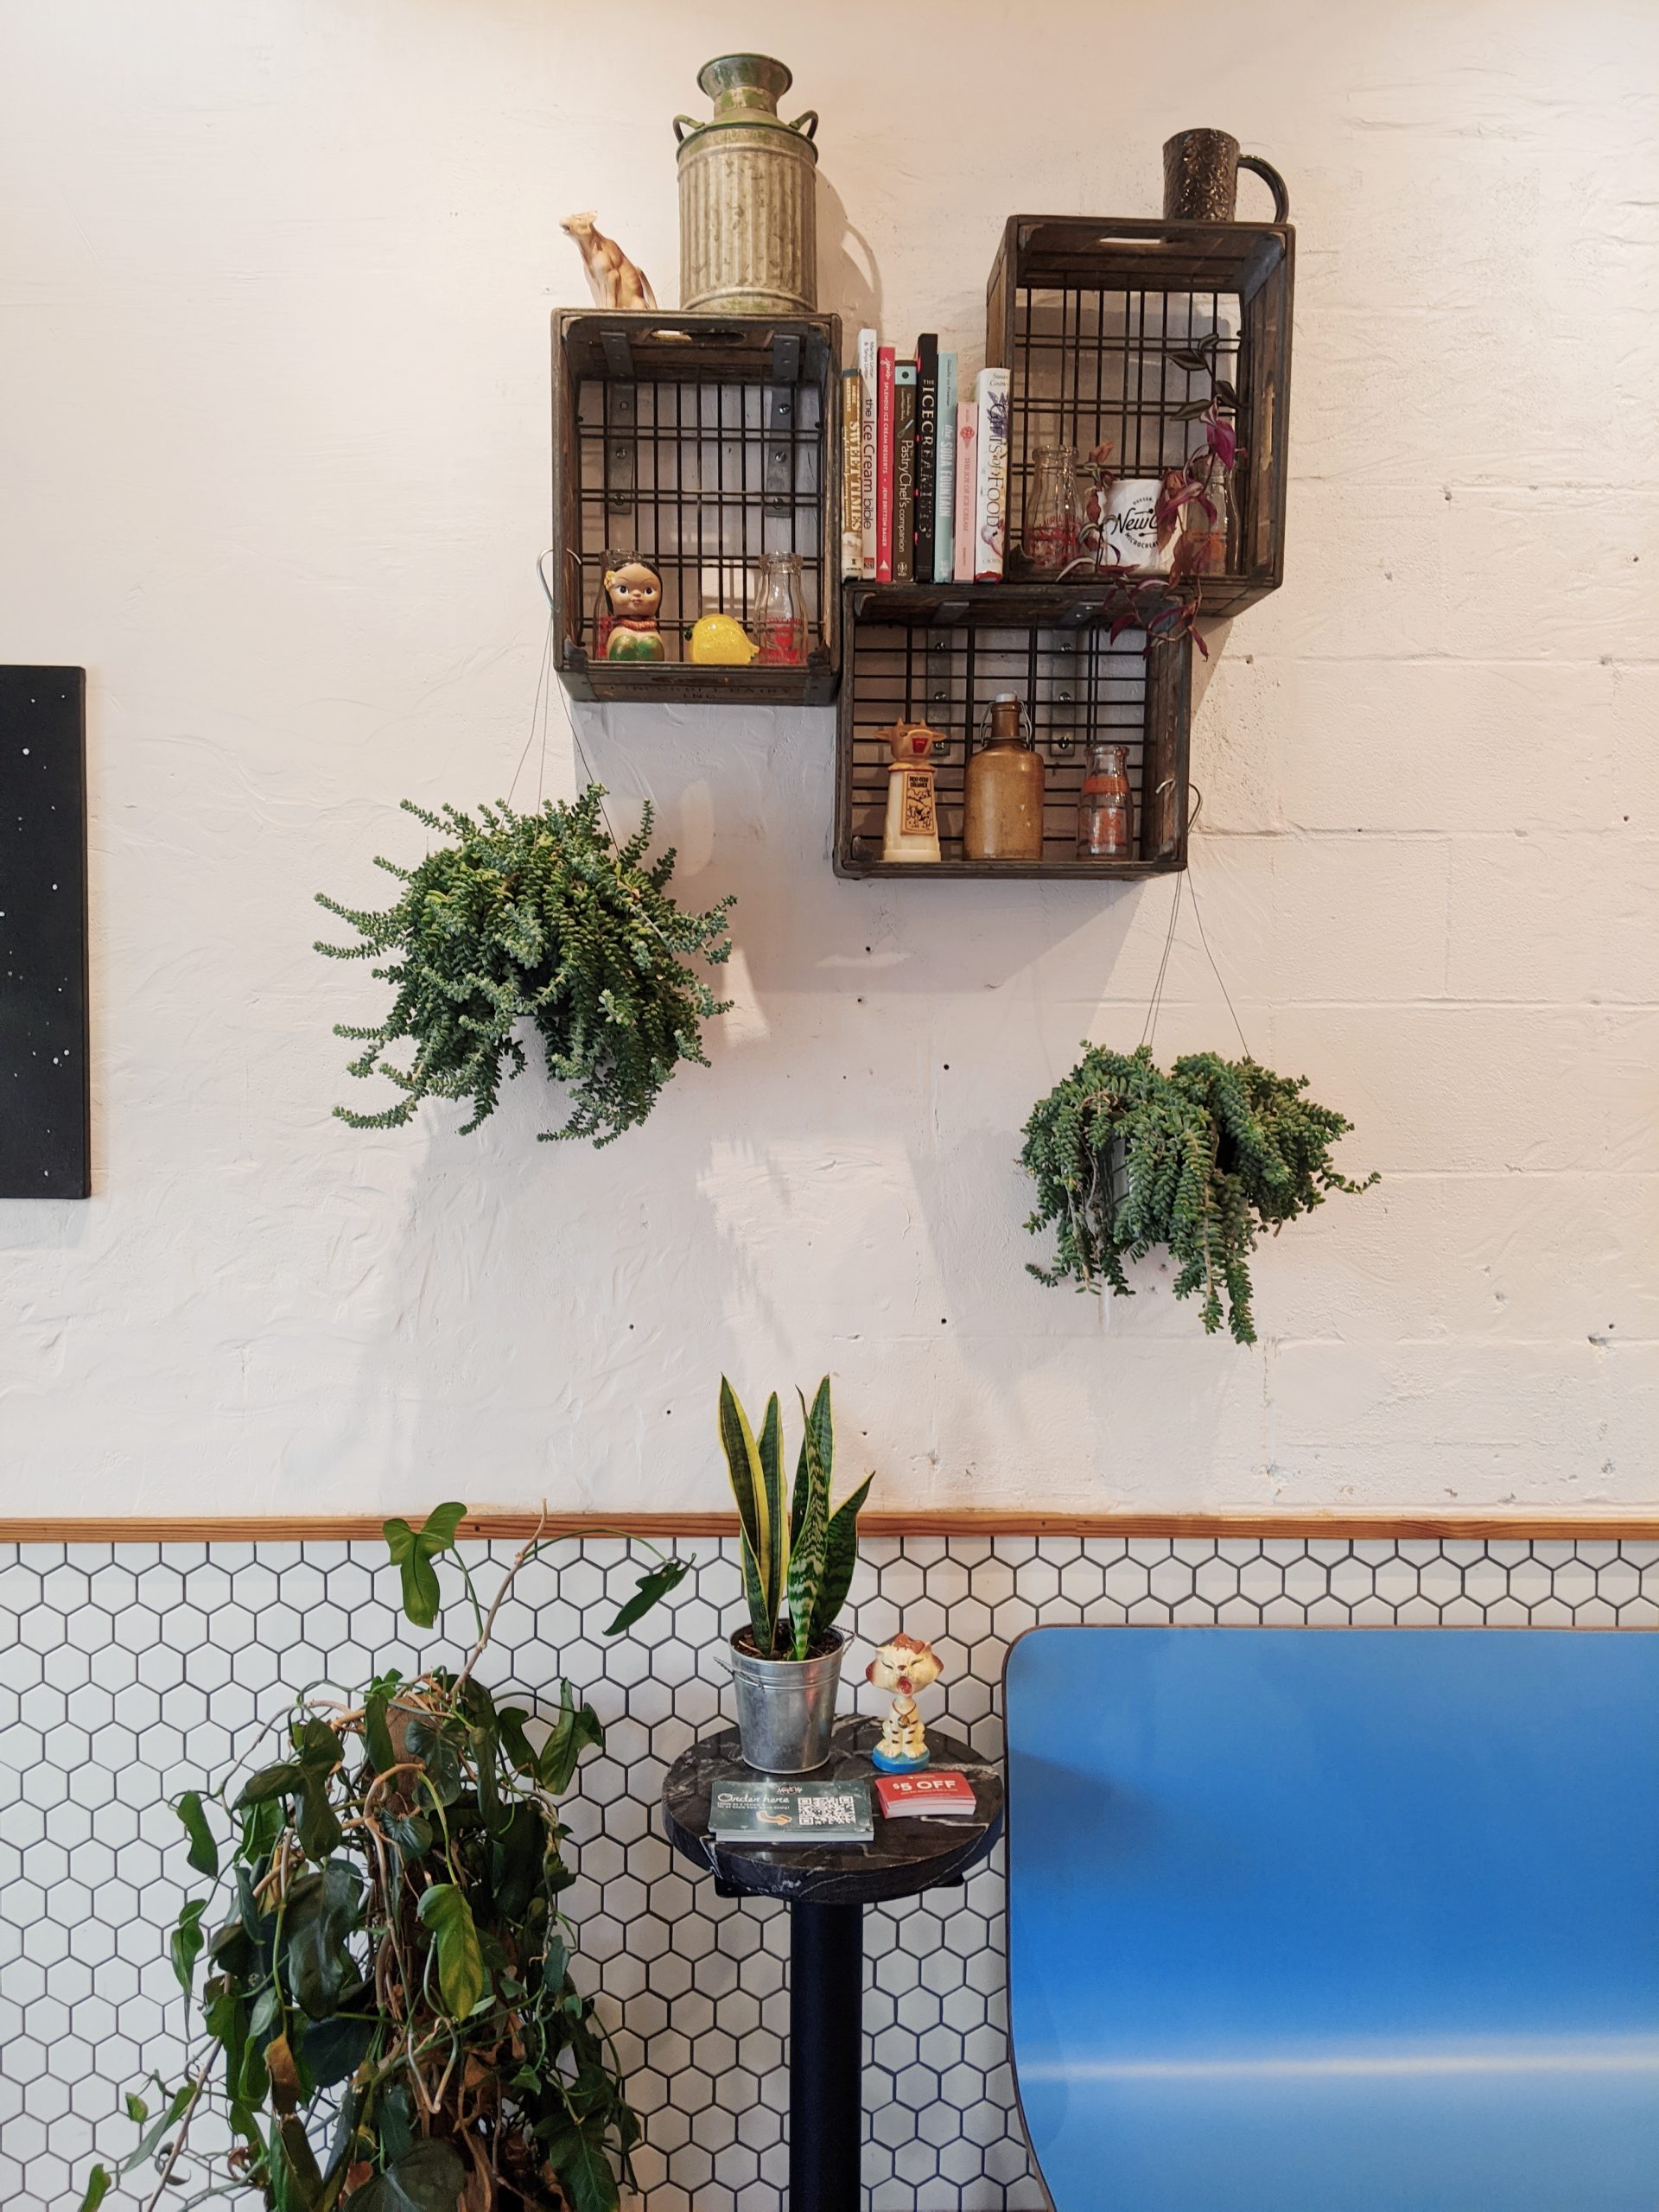 bookshelves with hangingplants and a hexagon tile wall at New City Microcreamery